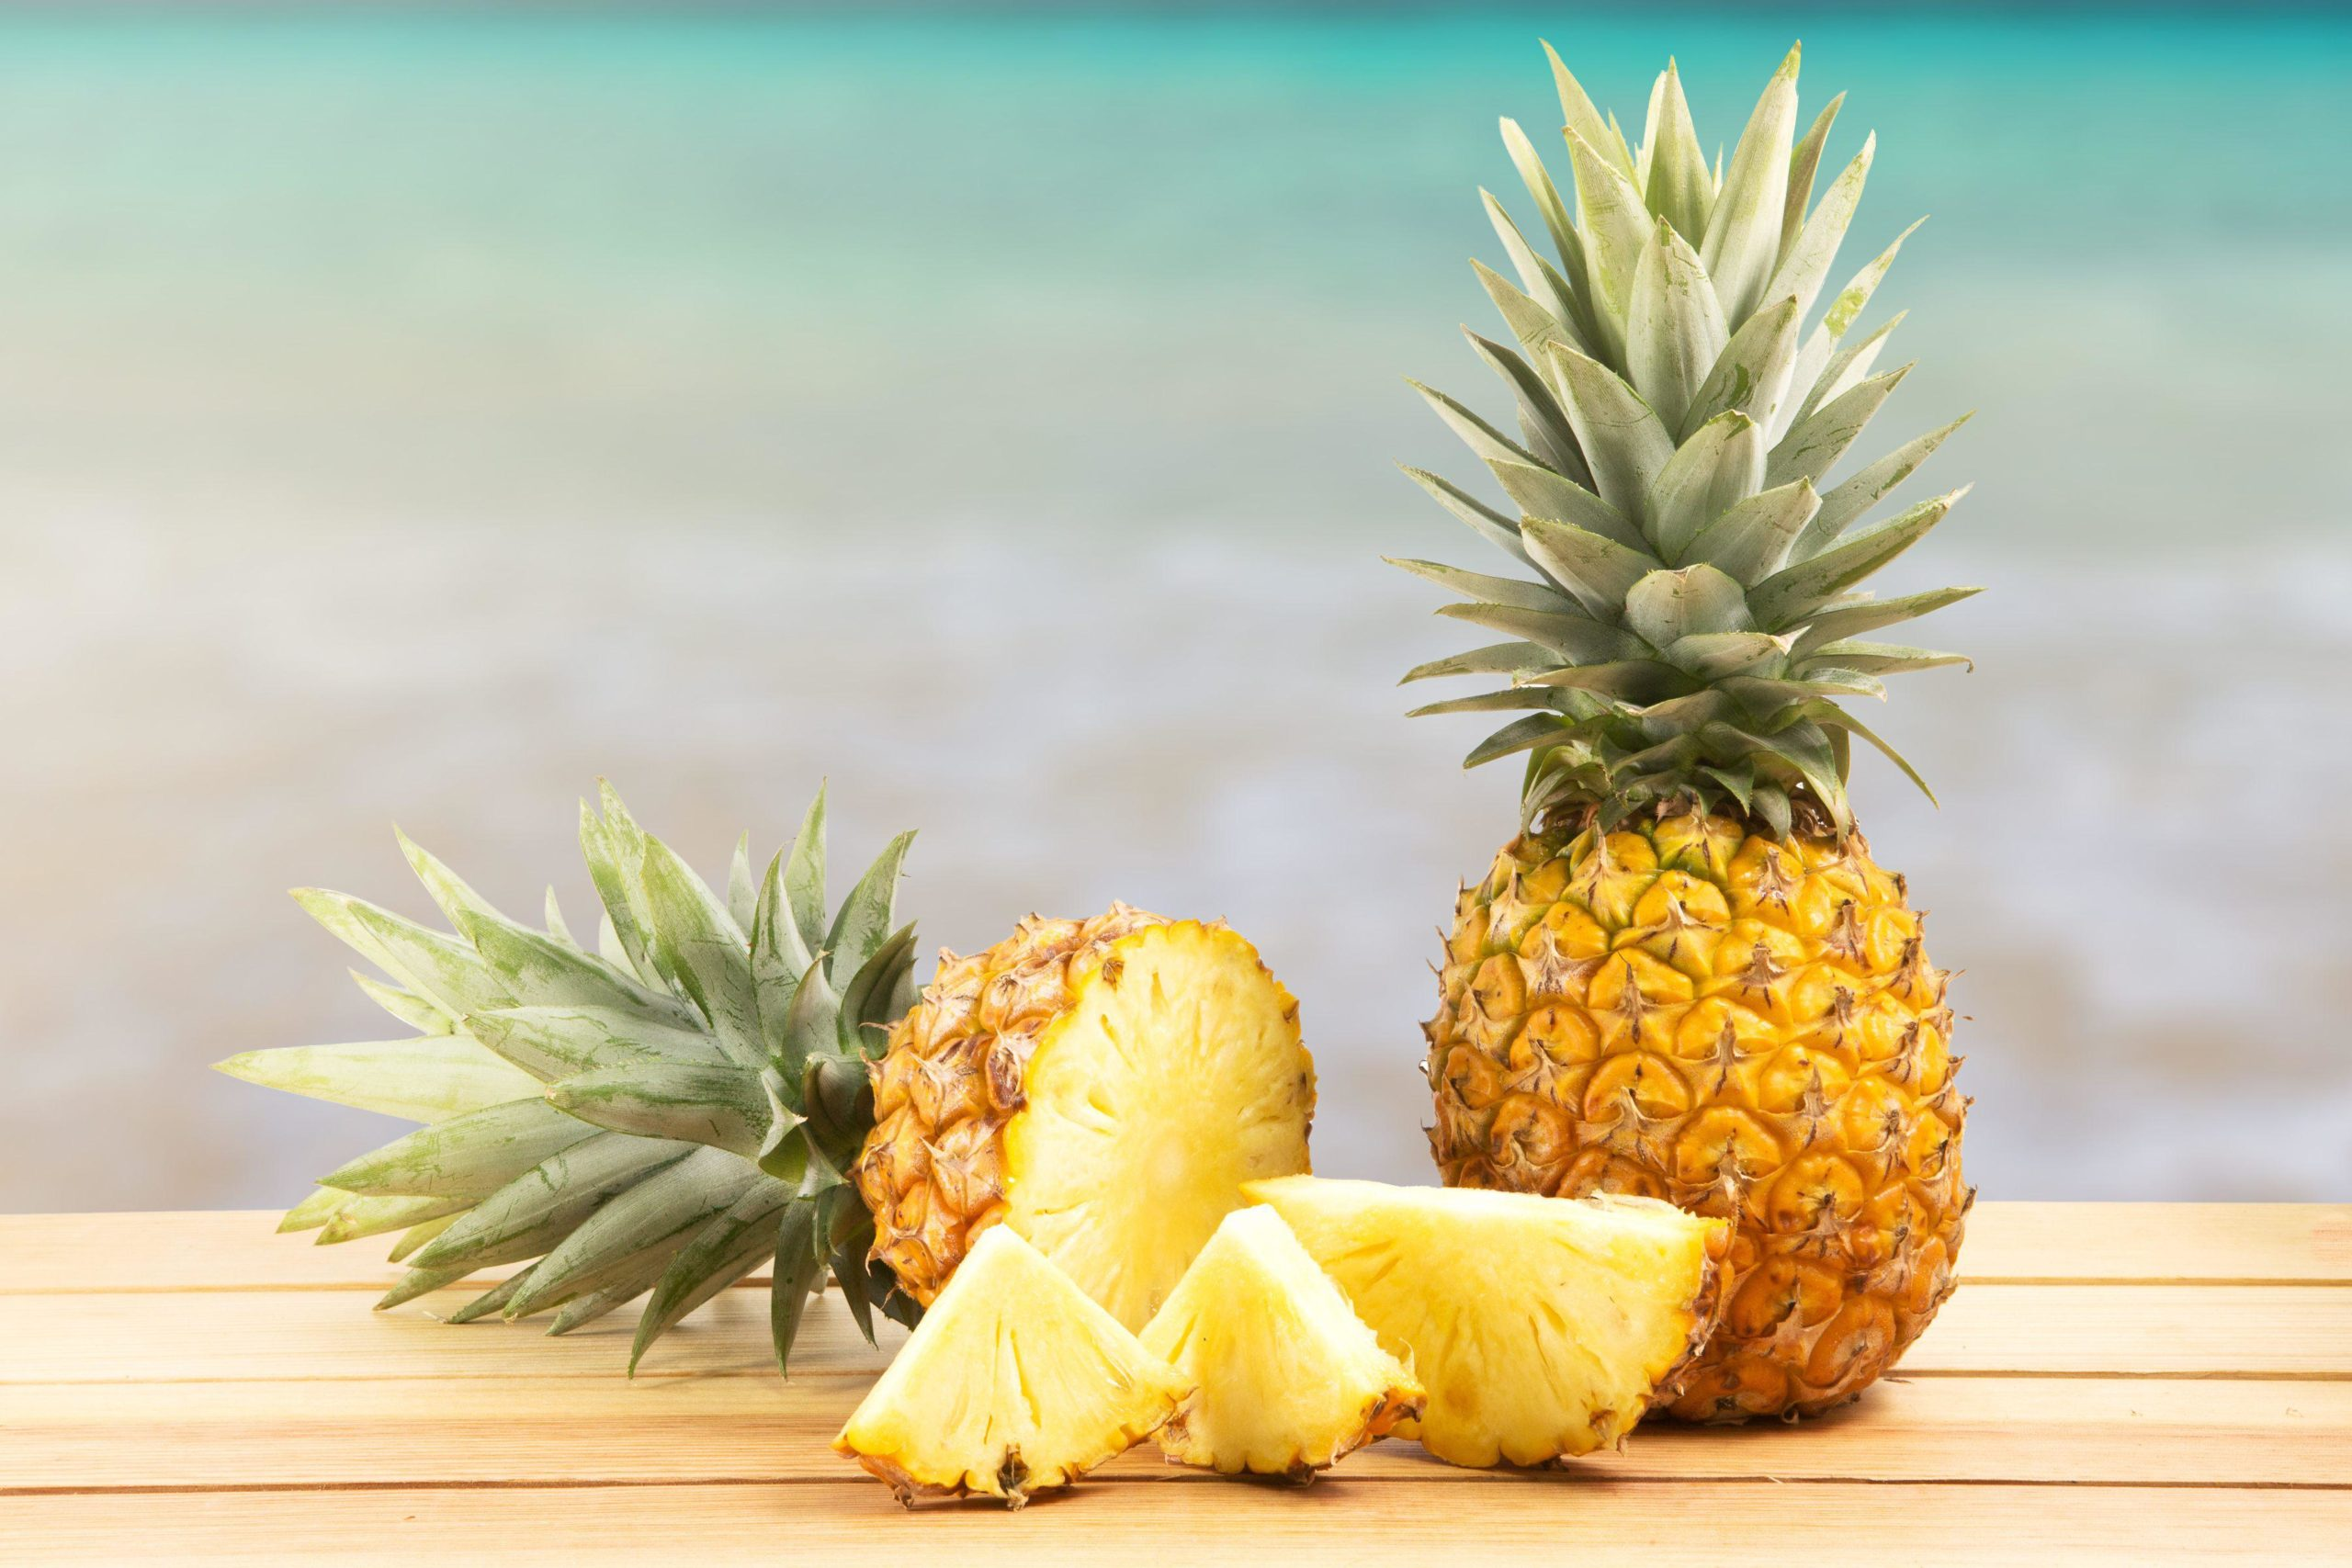 3 Simple Ways to Make a Delicious Baked Brazilian Pineapple